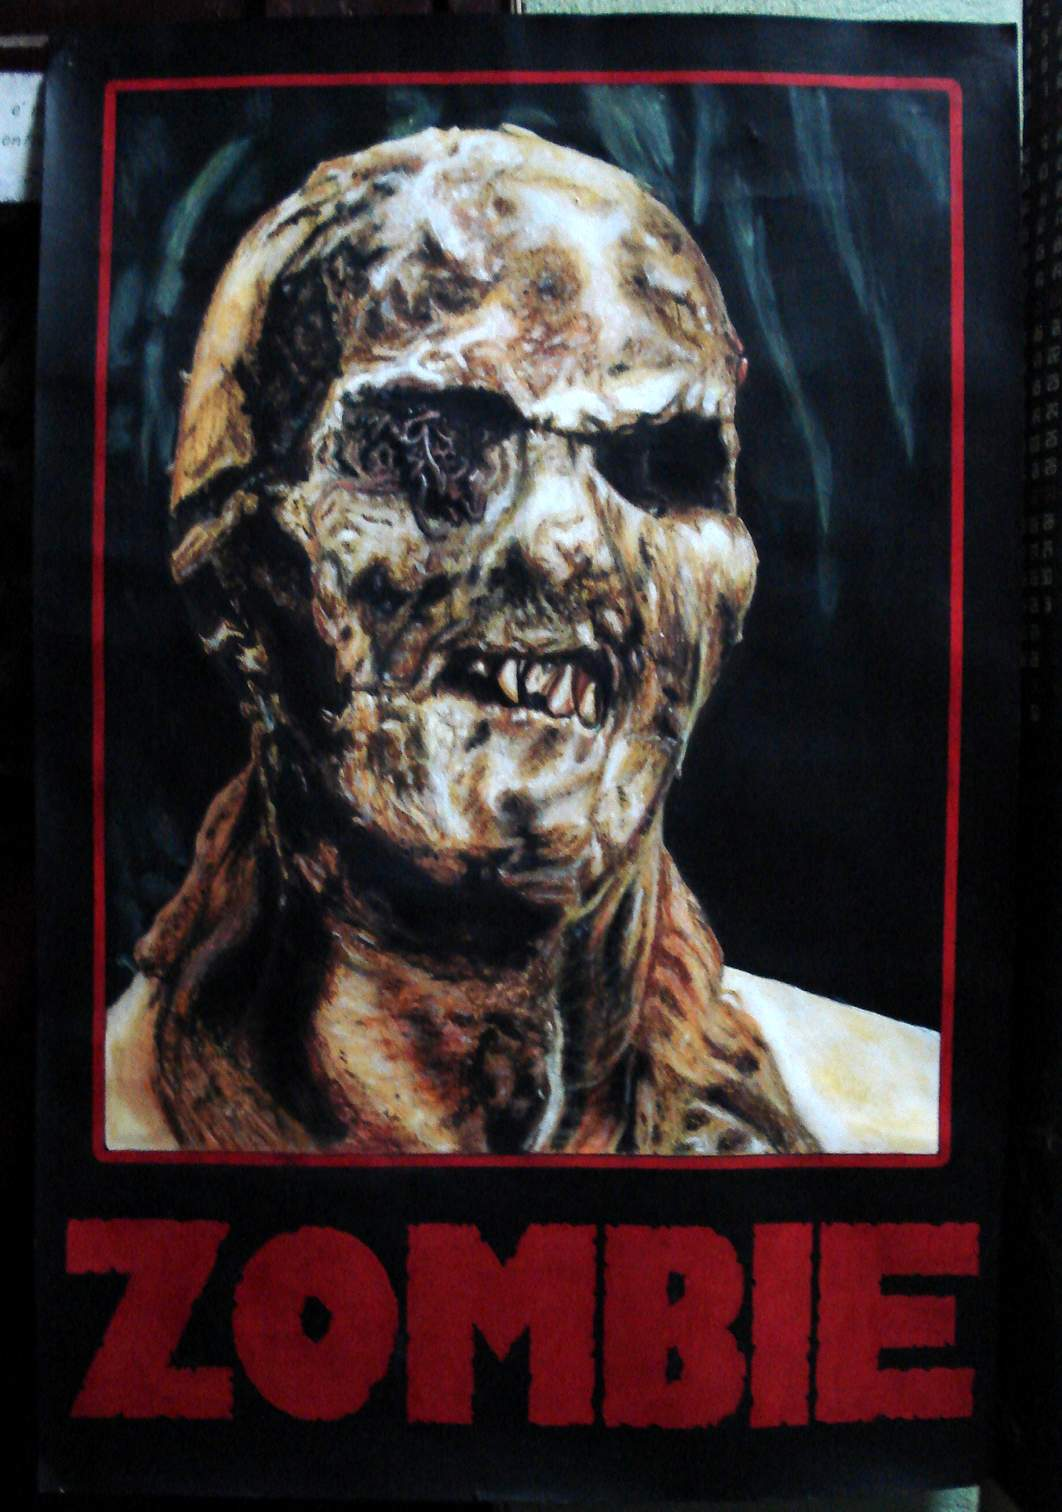 a review of zombi or zombi 2 movie by lucio fulcio Watch zombi 2 online zombi 2 the 1979 movie reviews, trailers, videos and more at yidio.